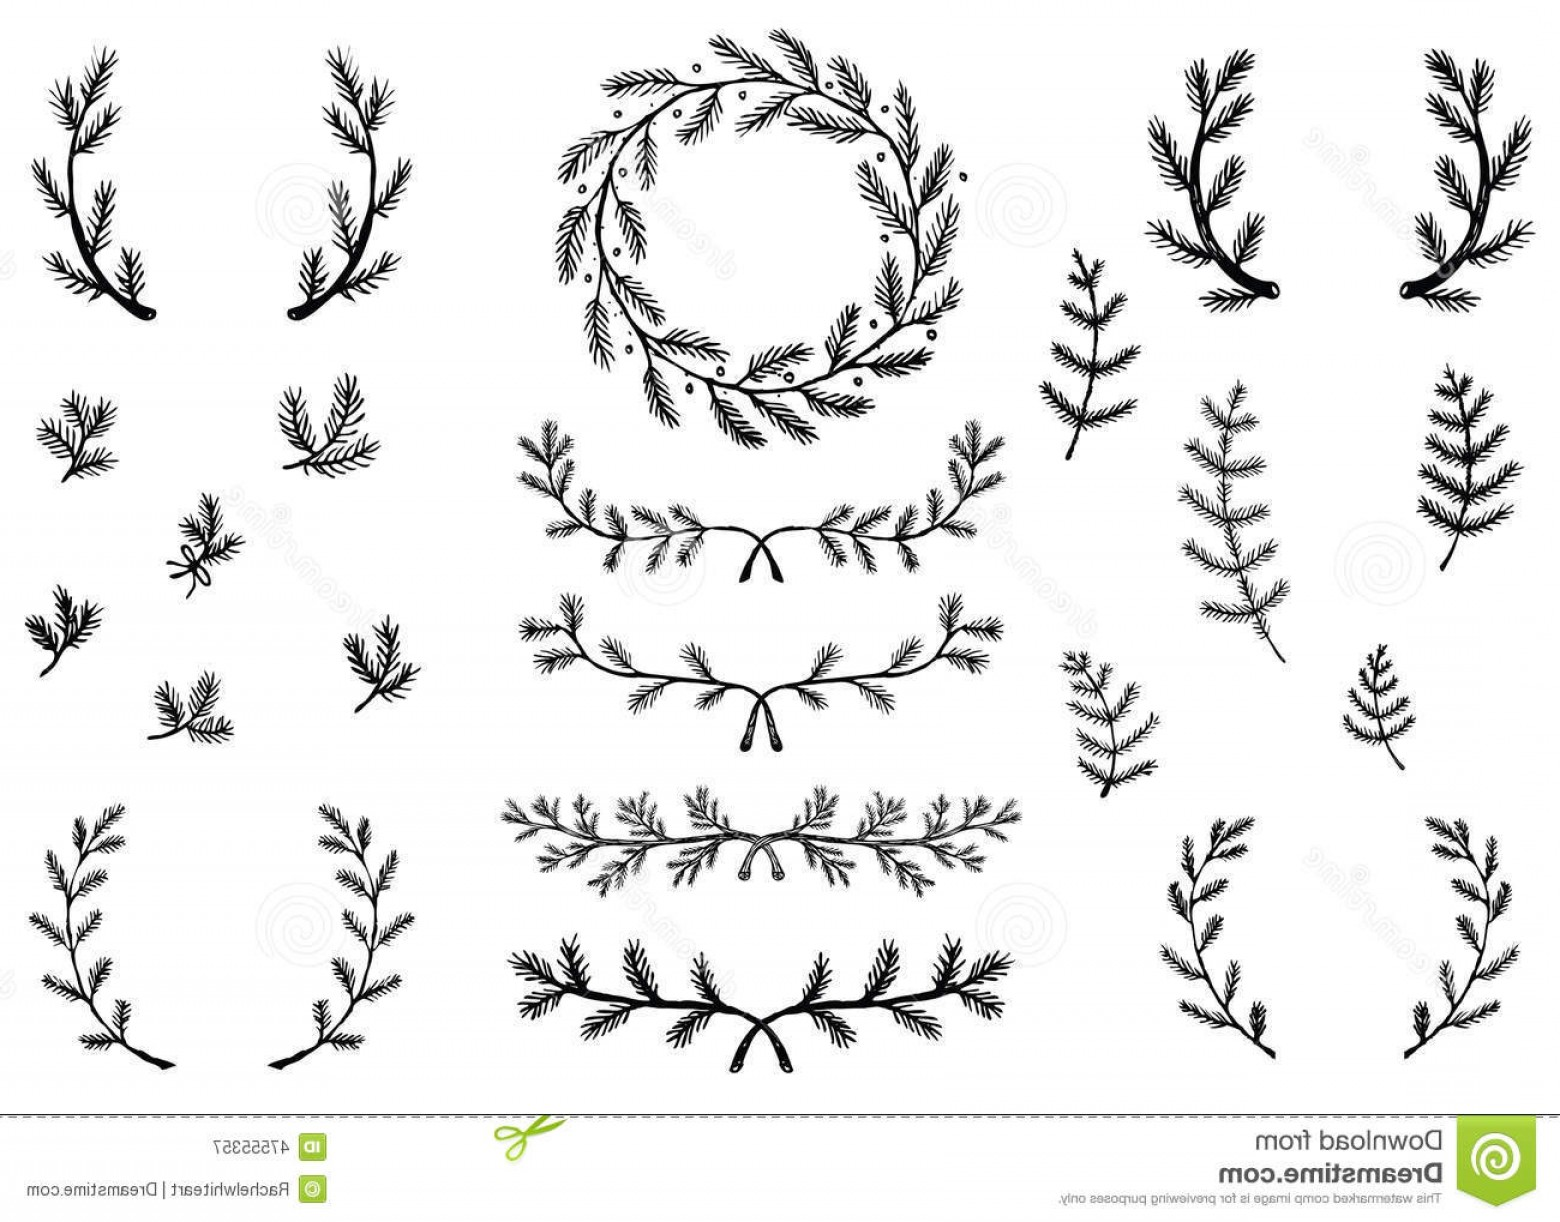 Hand Drawn Laurel Vector: Stock Illustration Winter Laurels Collection Hand Drawn Pine Branch Illustrations Accents Wreath Image